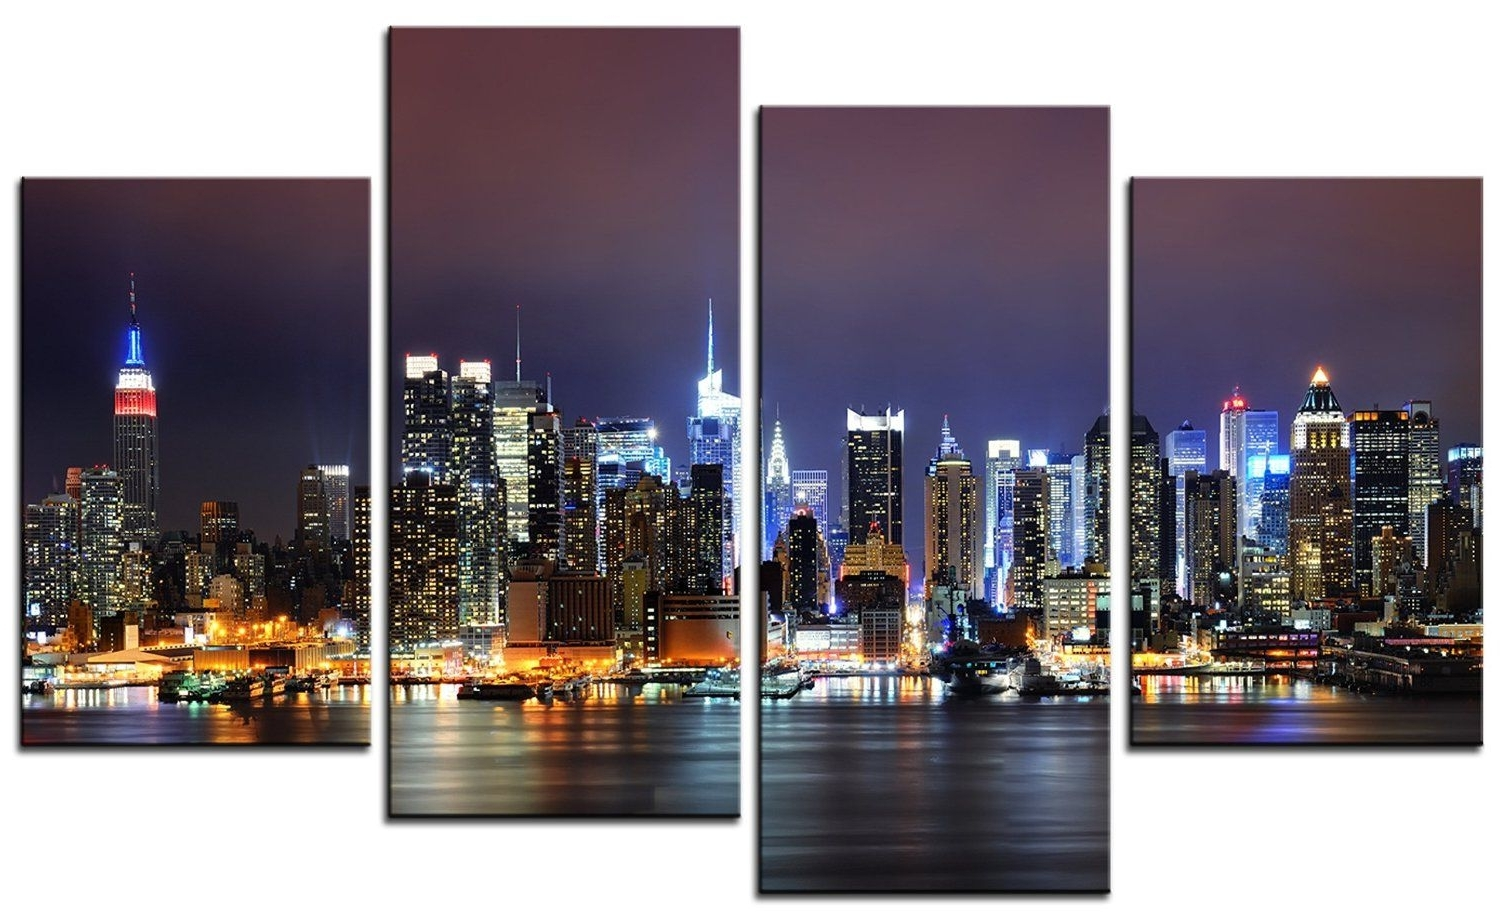 Most Recent Smartwallart – City Landscape Paintings Wall Art Quiet New York City For New York City Wall Art (View 9 of 15)